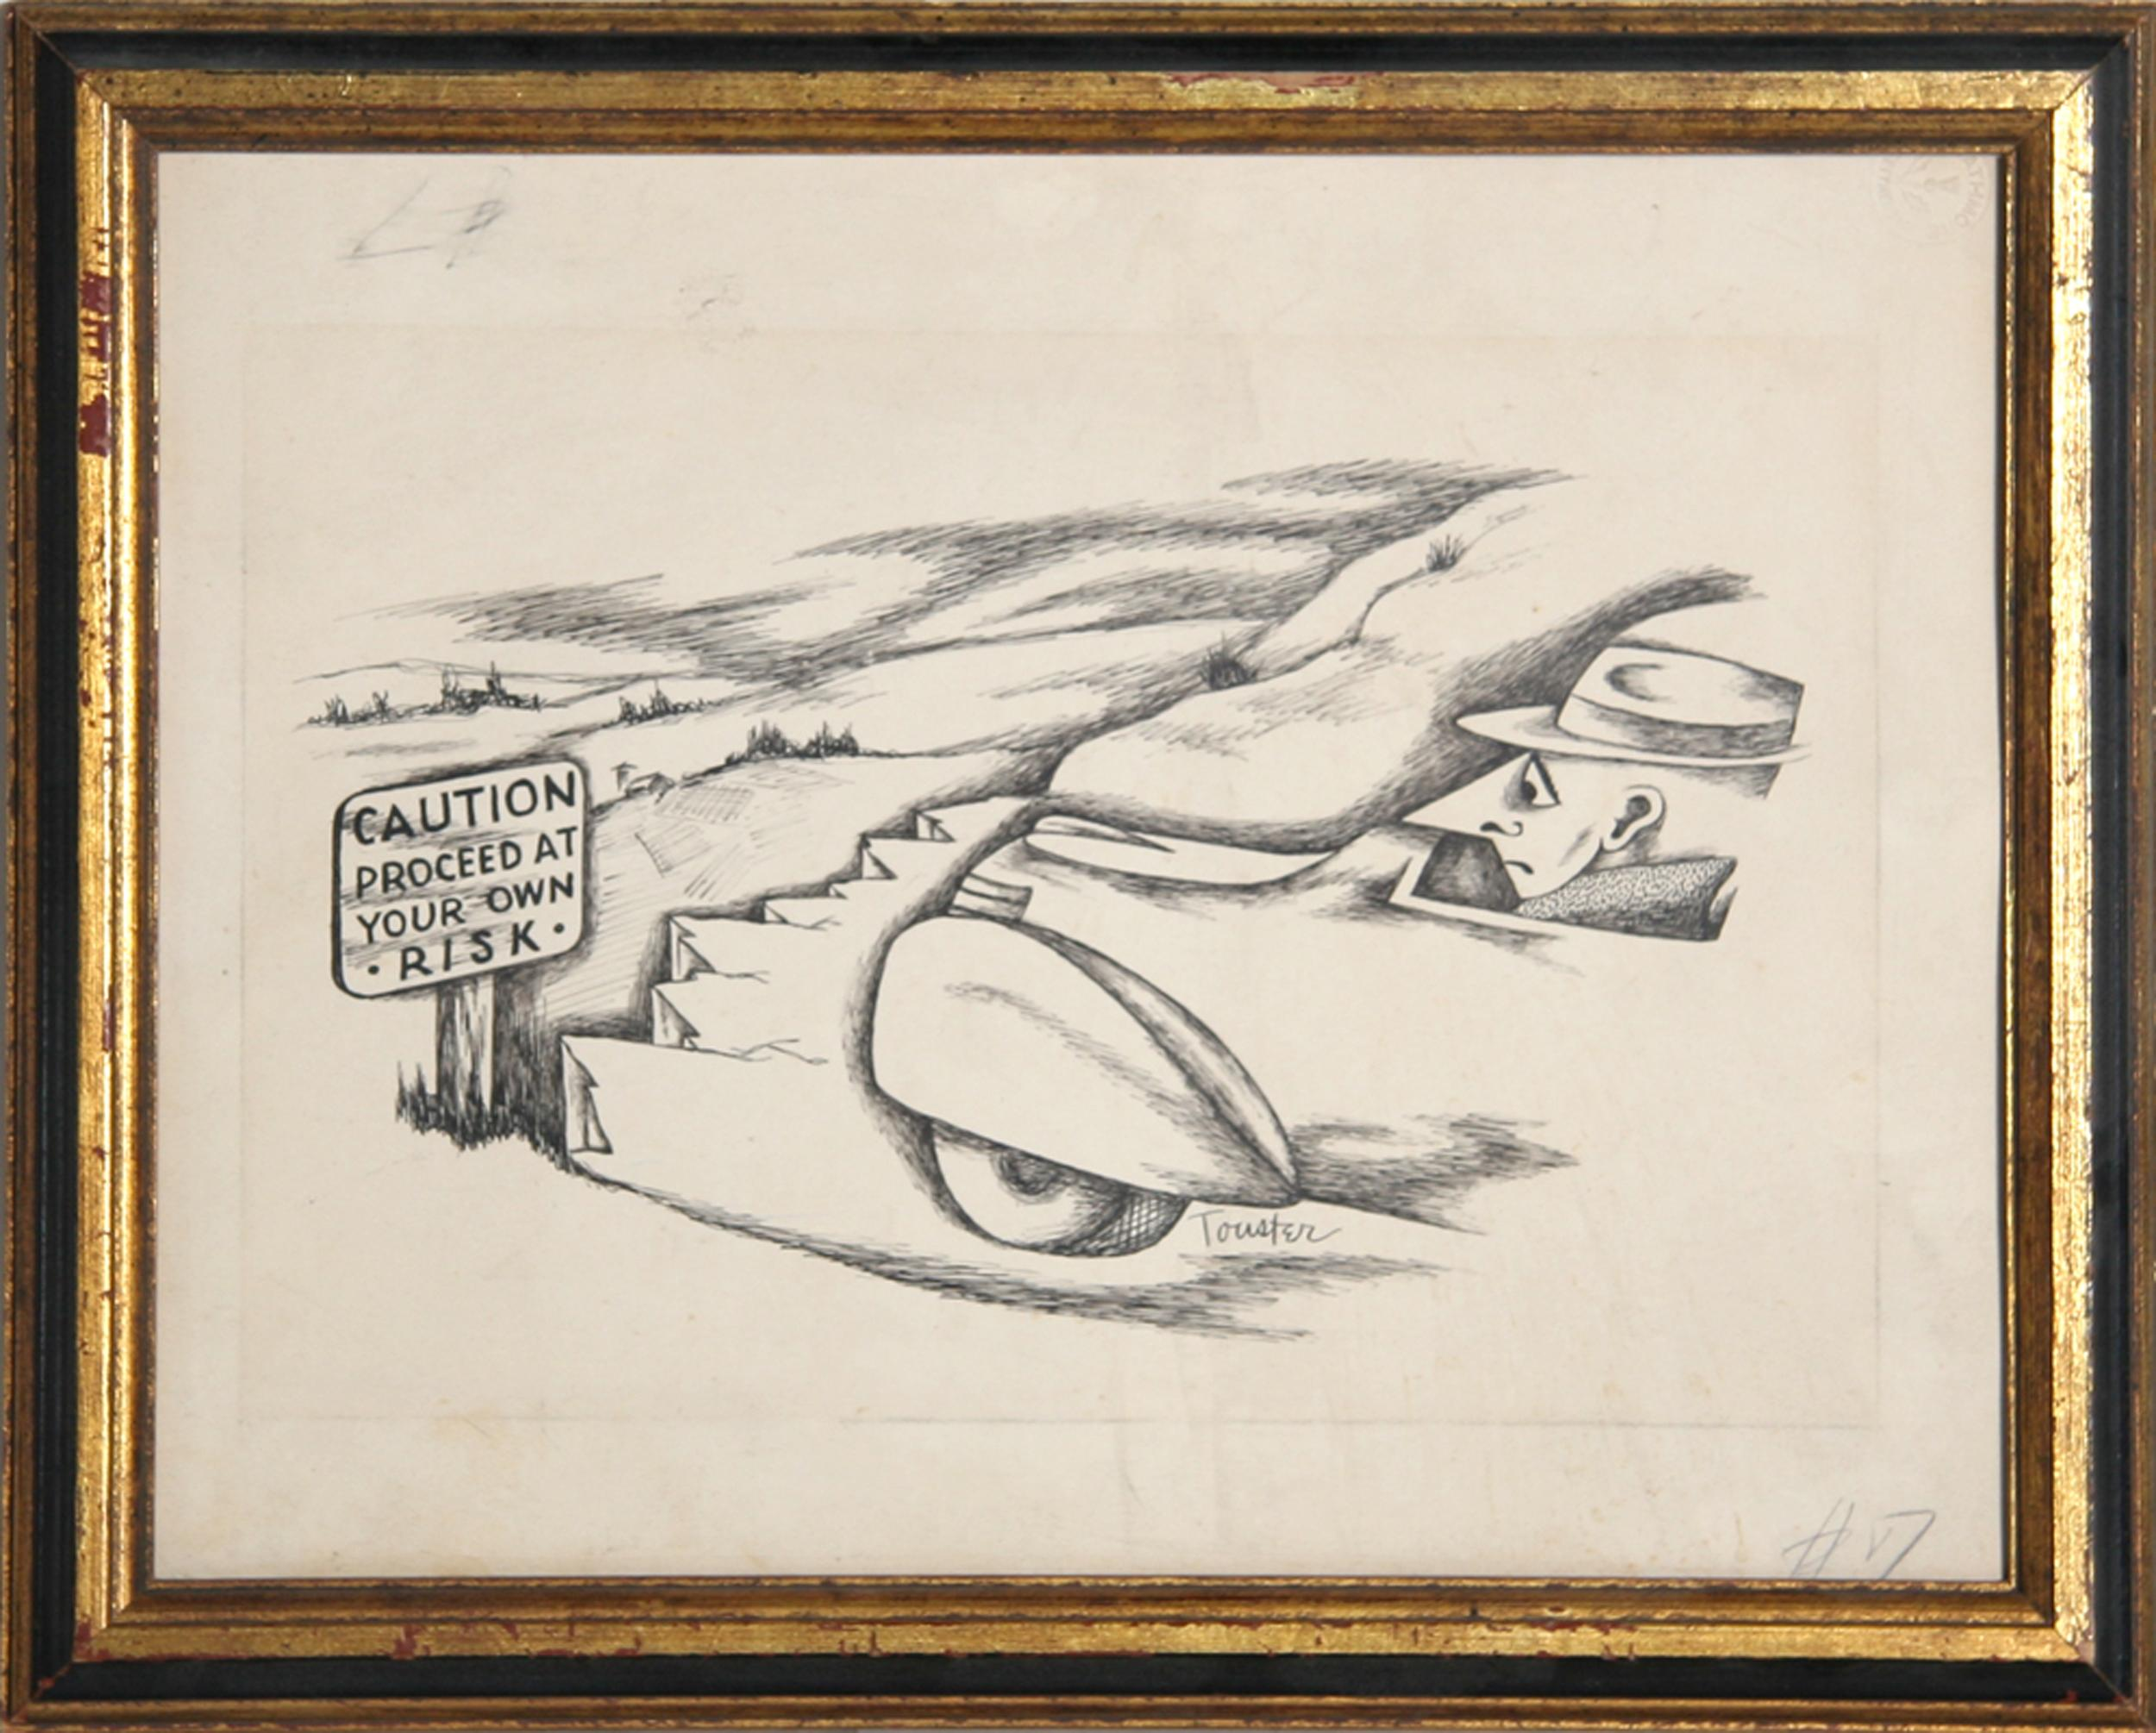 Irwin Touster, Proceed at Own Risk, Lithograph